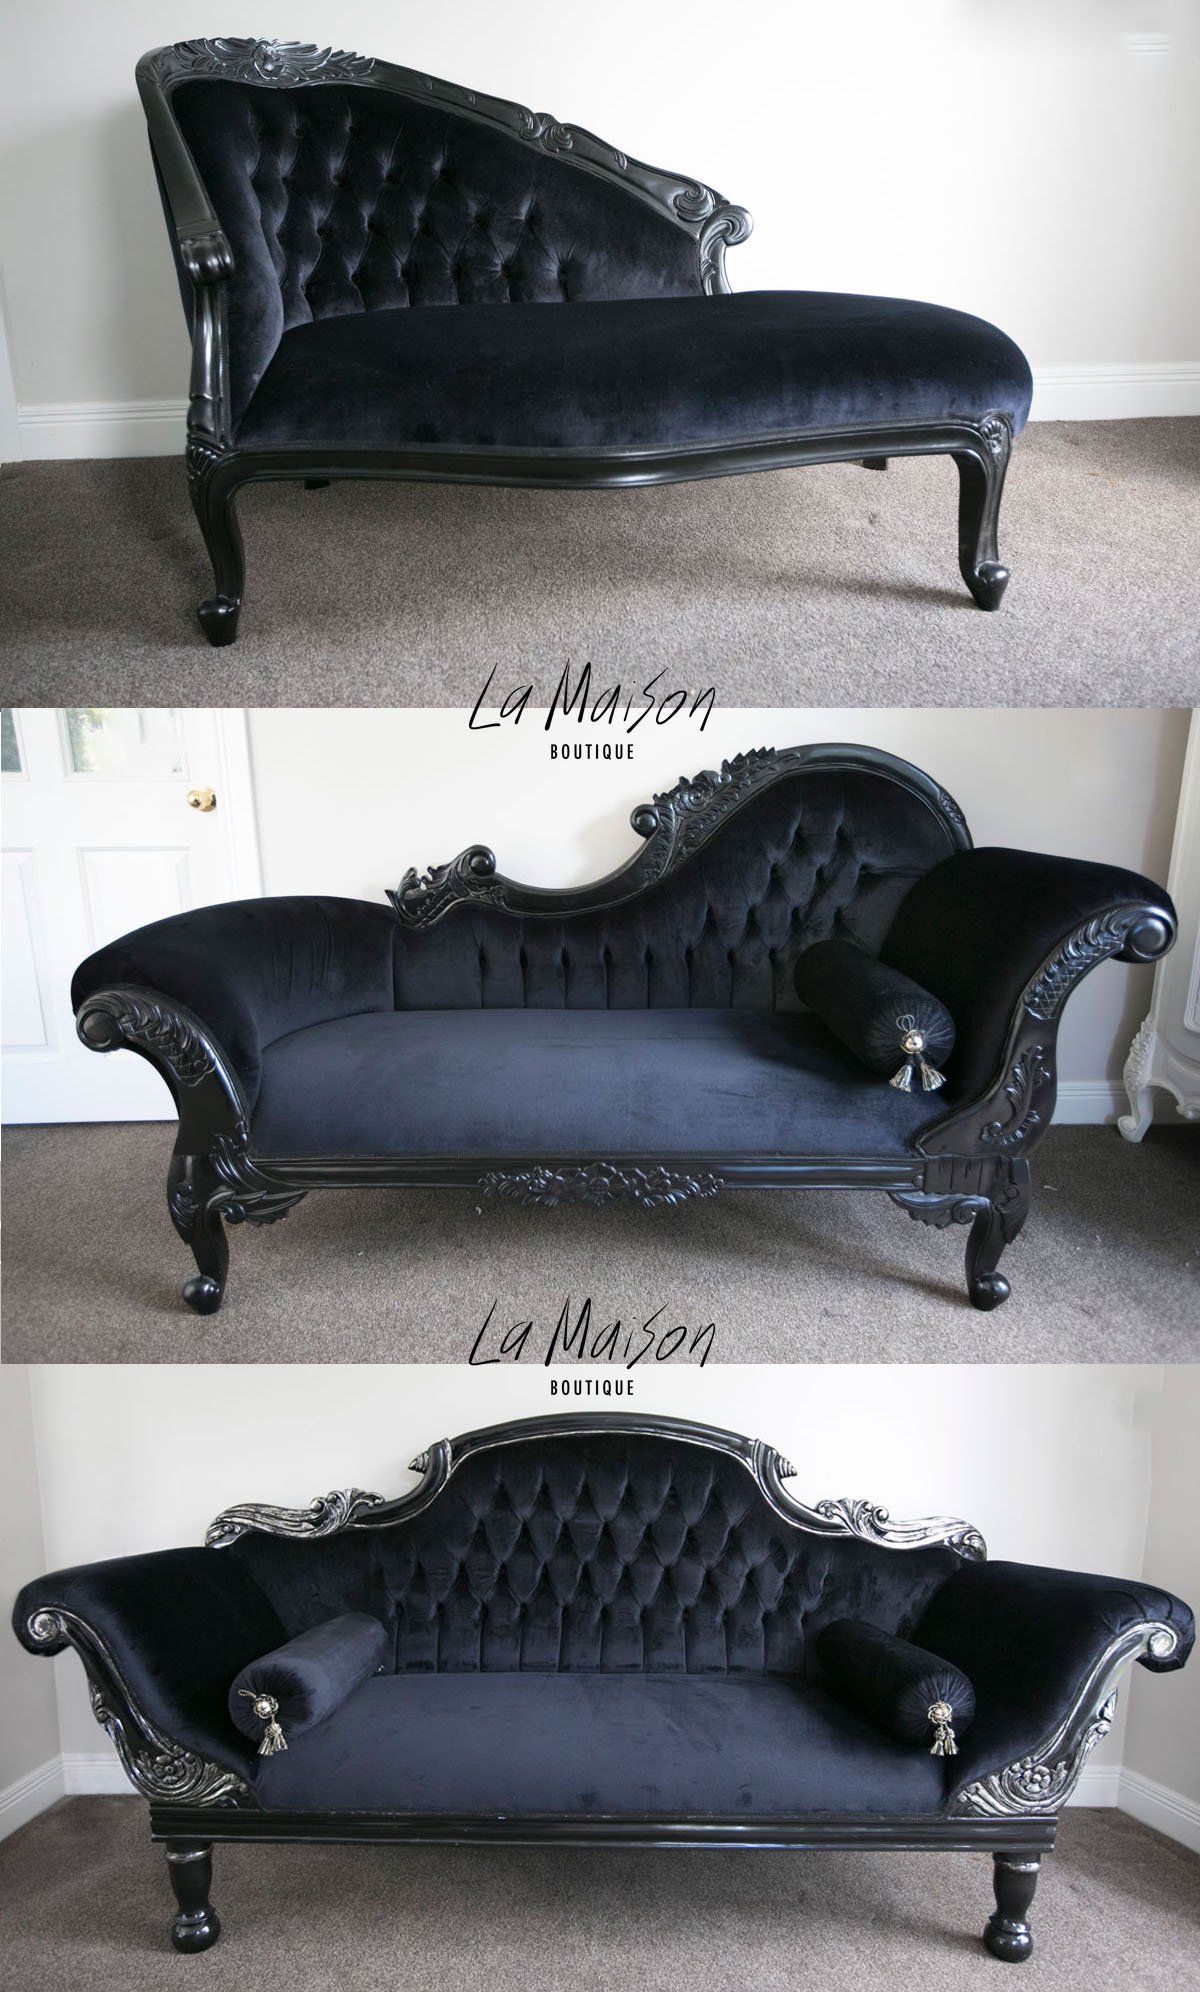 How to style a chaise longue la maison boutique - La chaise longue nantes ...